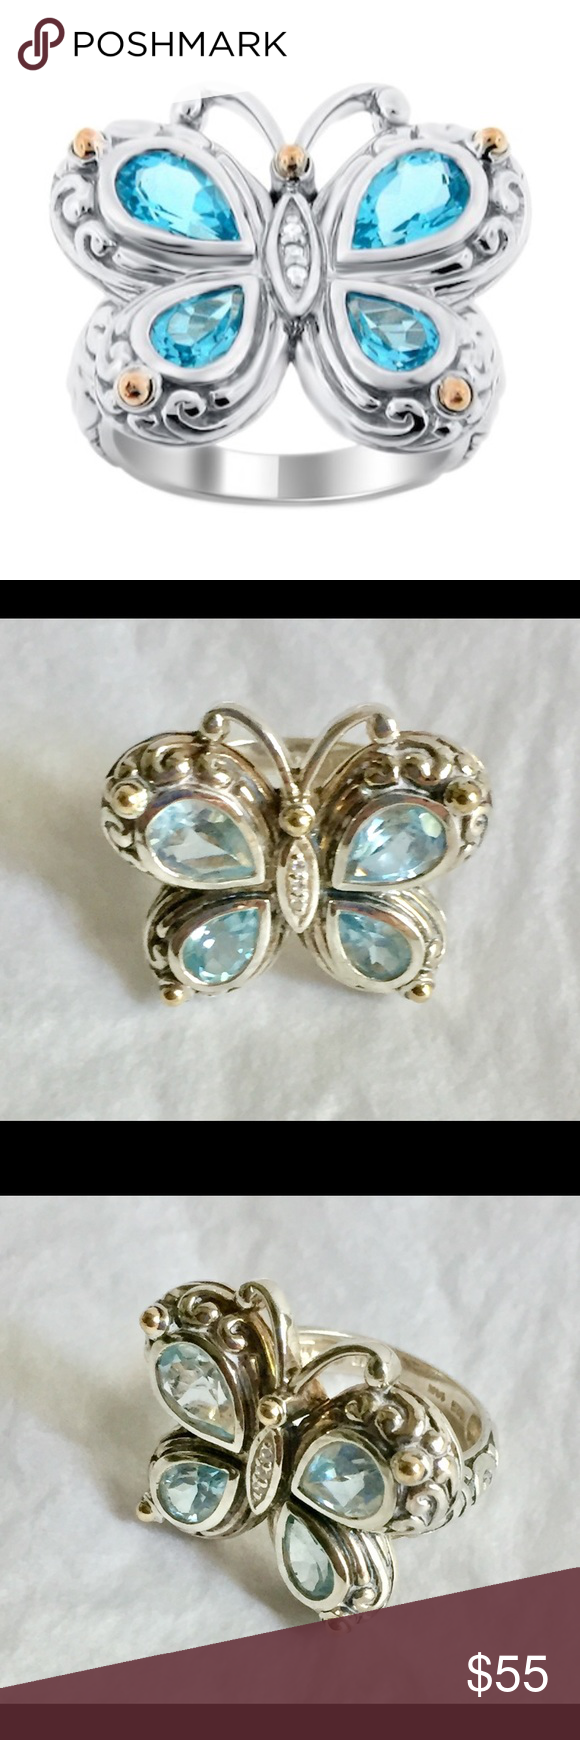 14k 925 gold sterling silver butterfly ring Butterfly